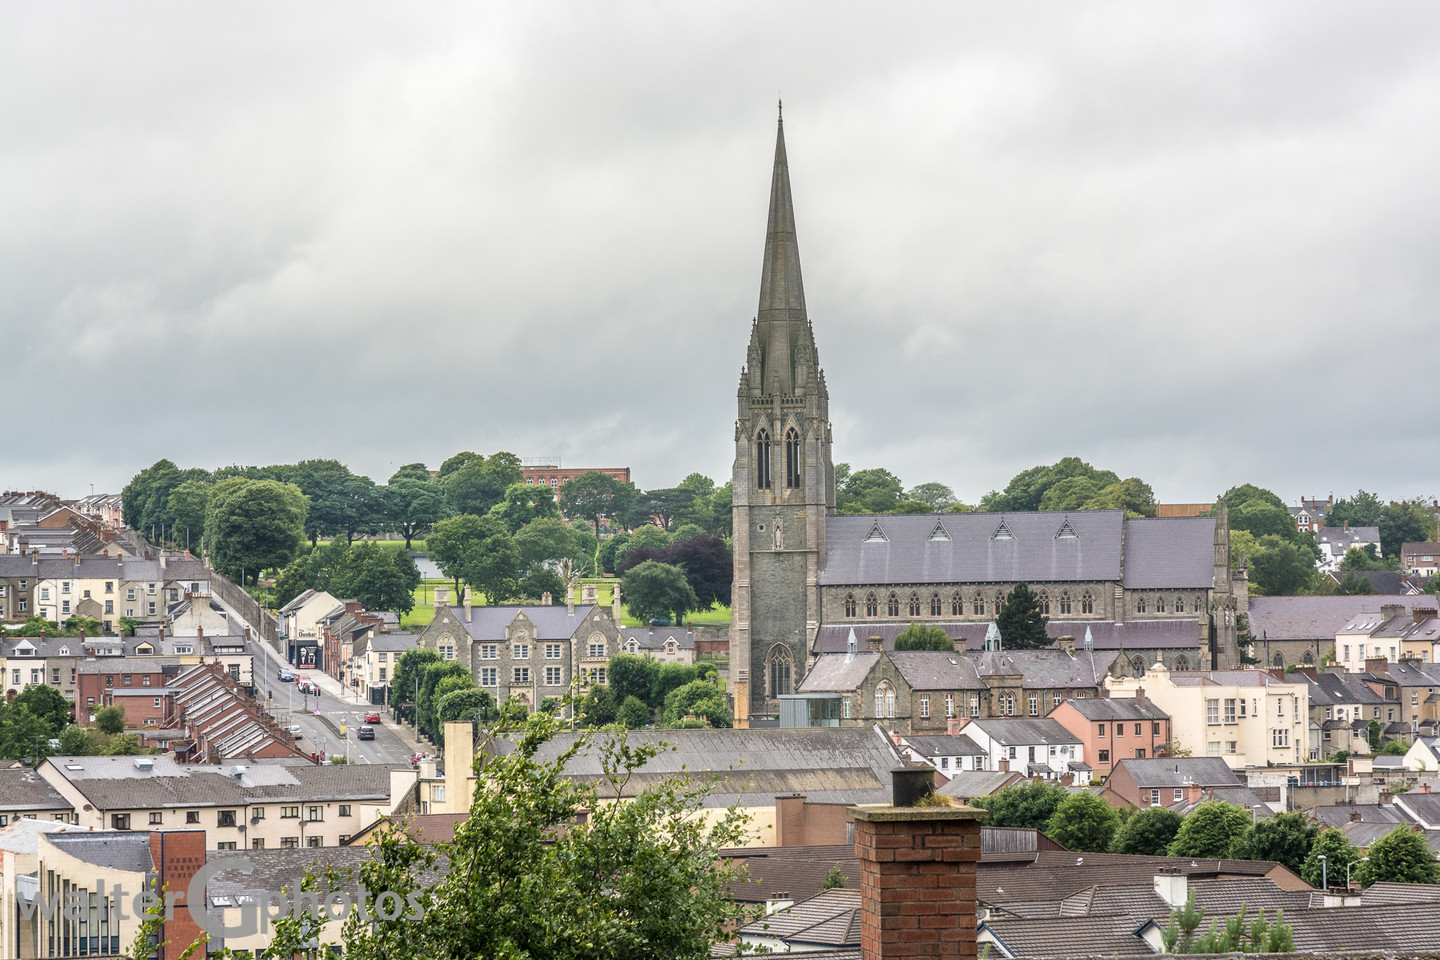 St Eugene's Cathedral, Derry (Londonderry), Northern Ireland